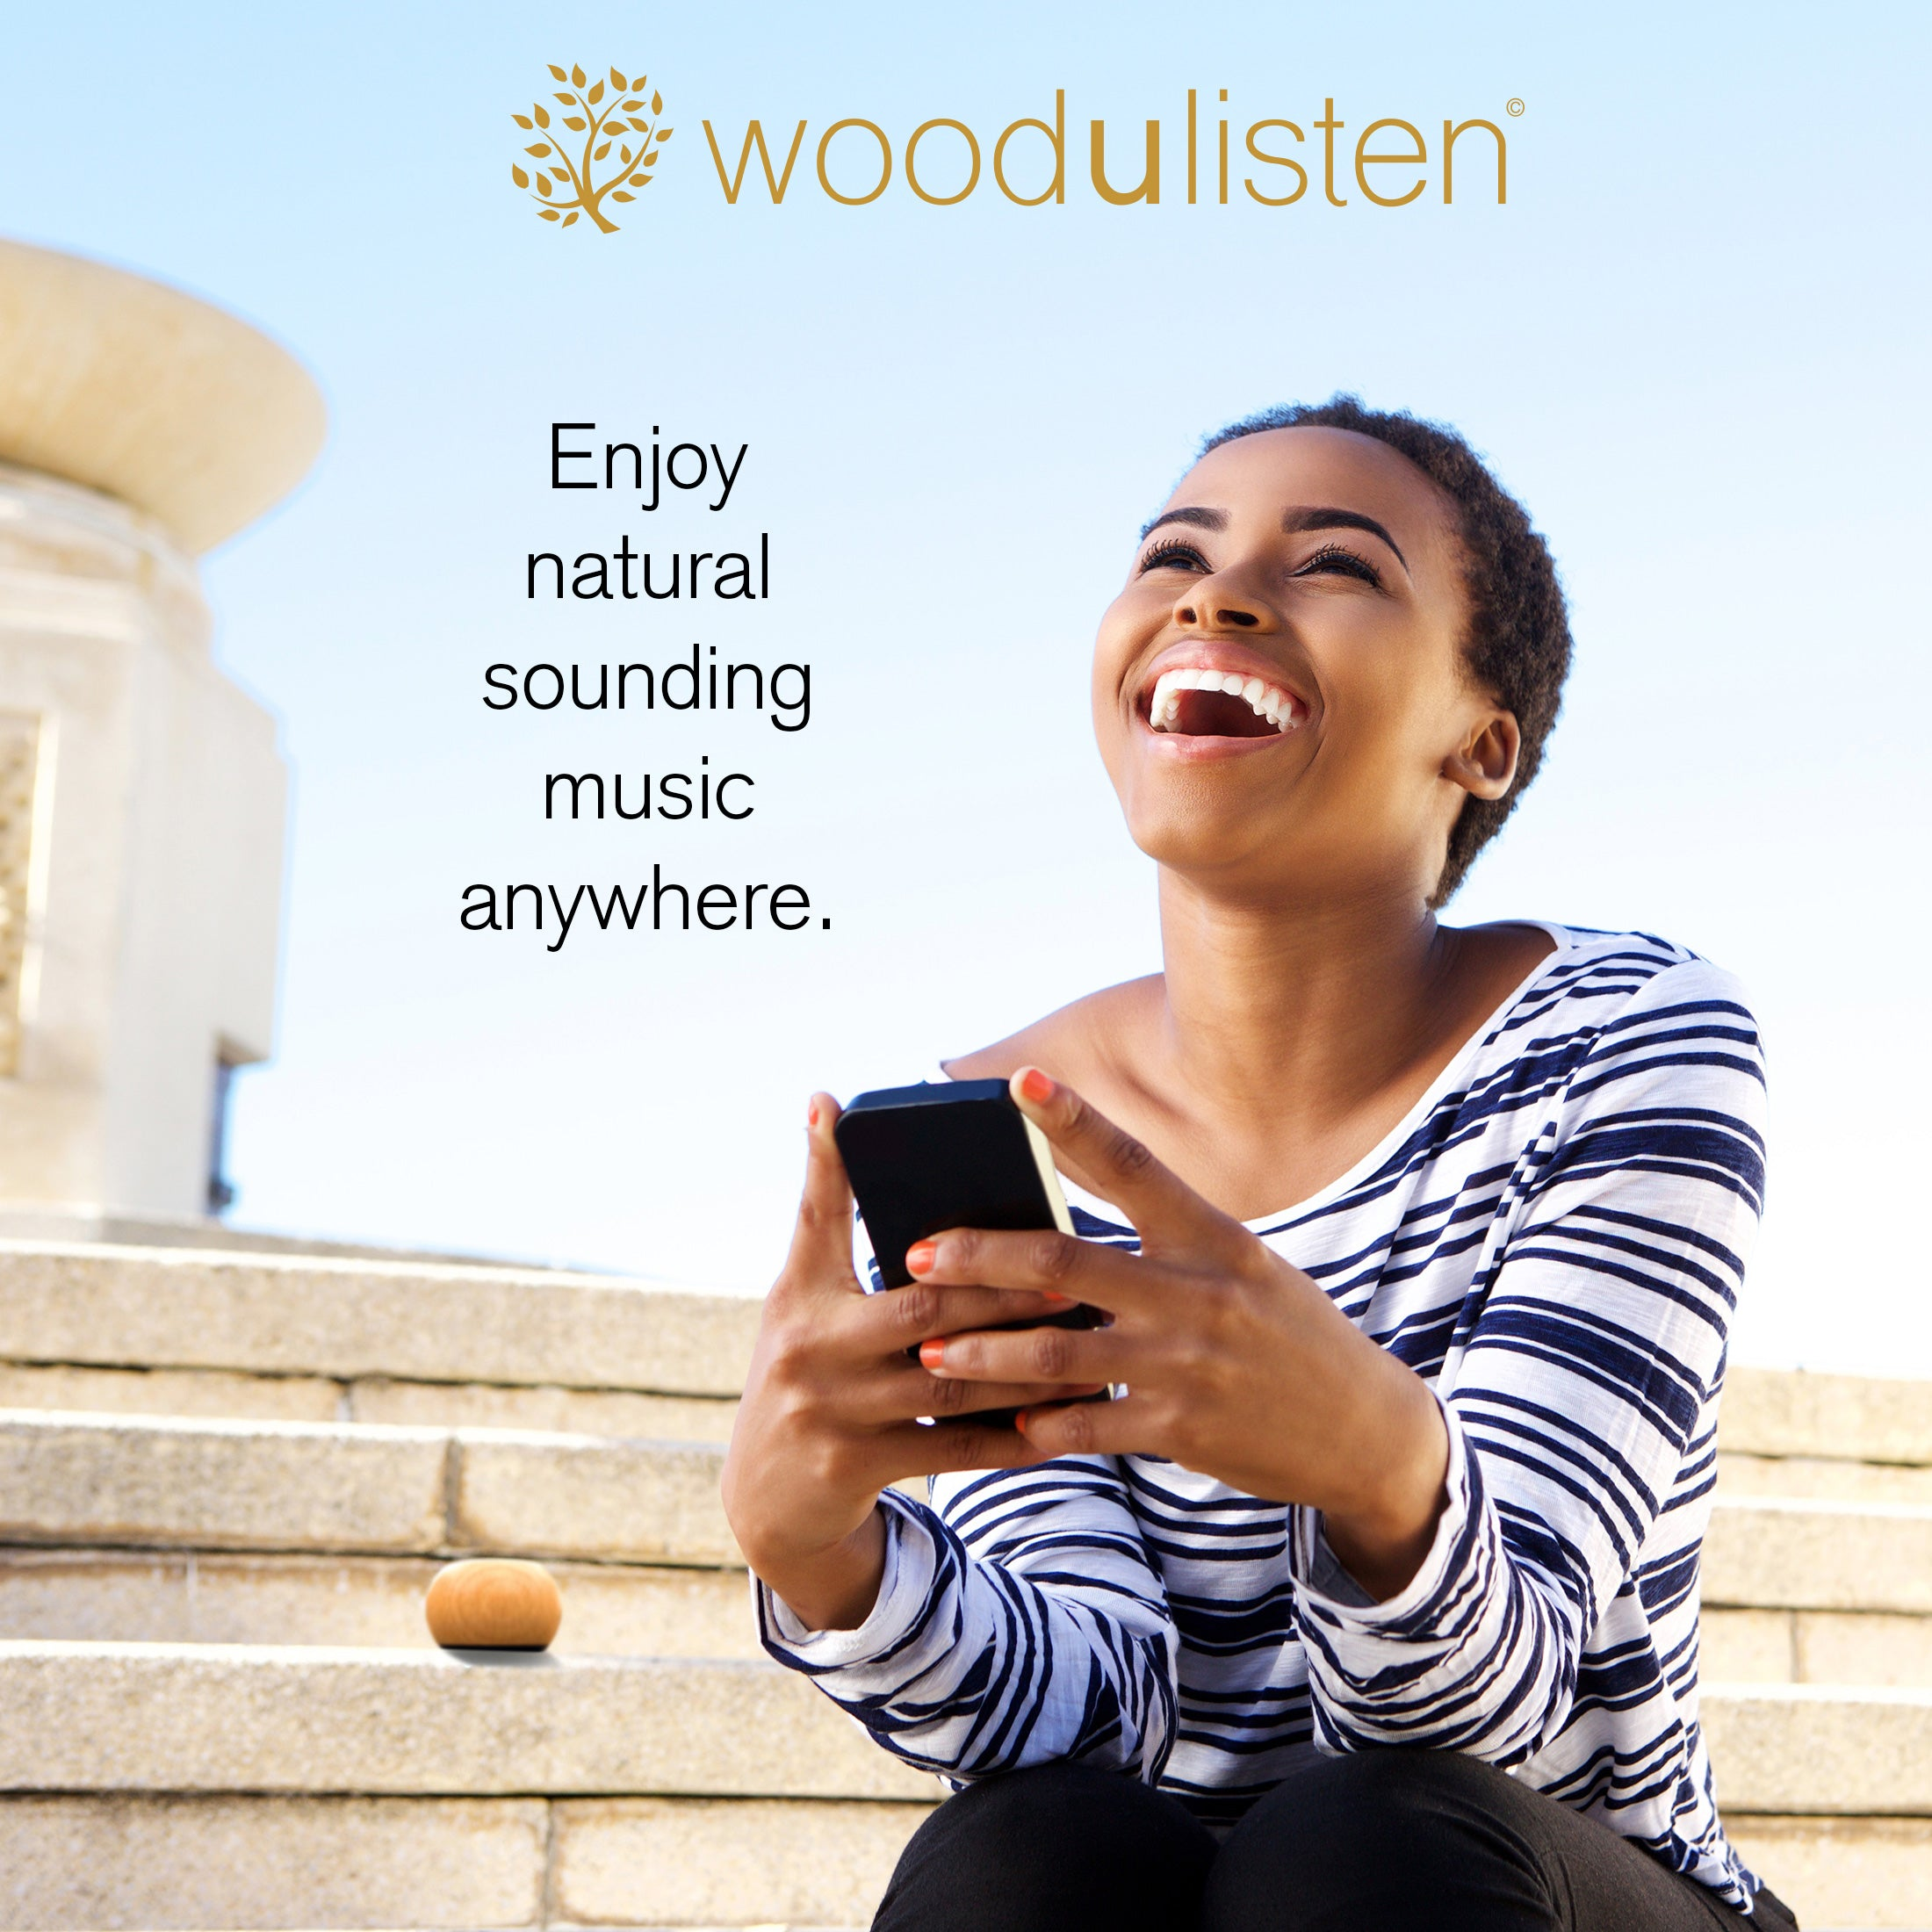 Tree and Branch woodulisten TWS Stereo Set with Charging Dock: